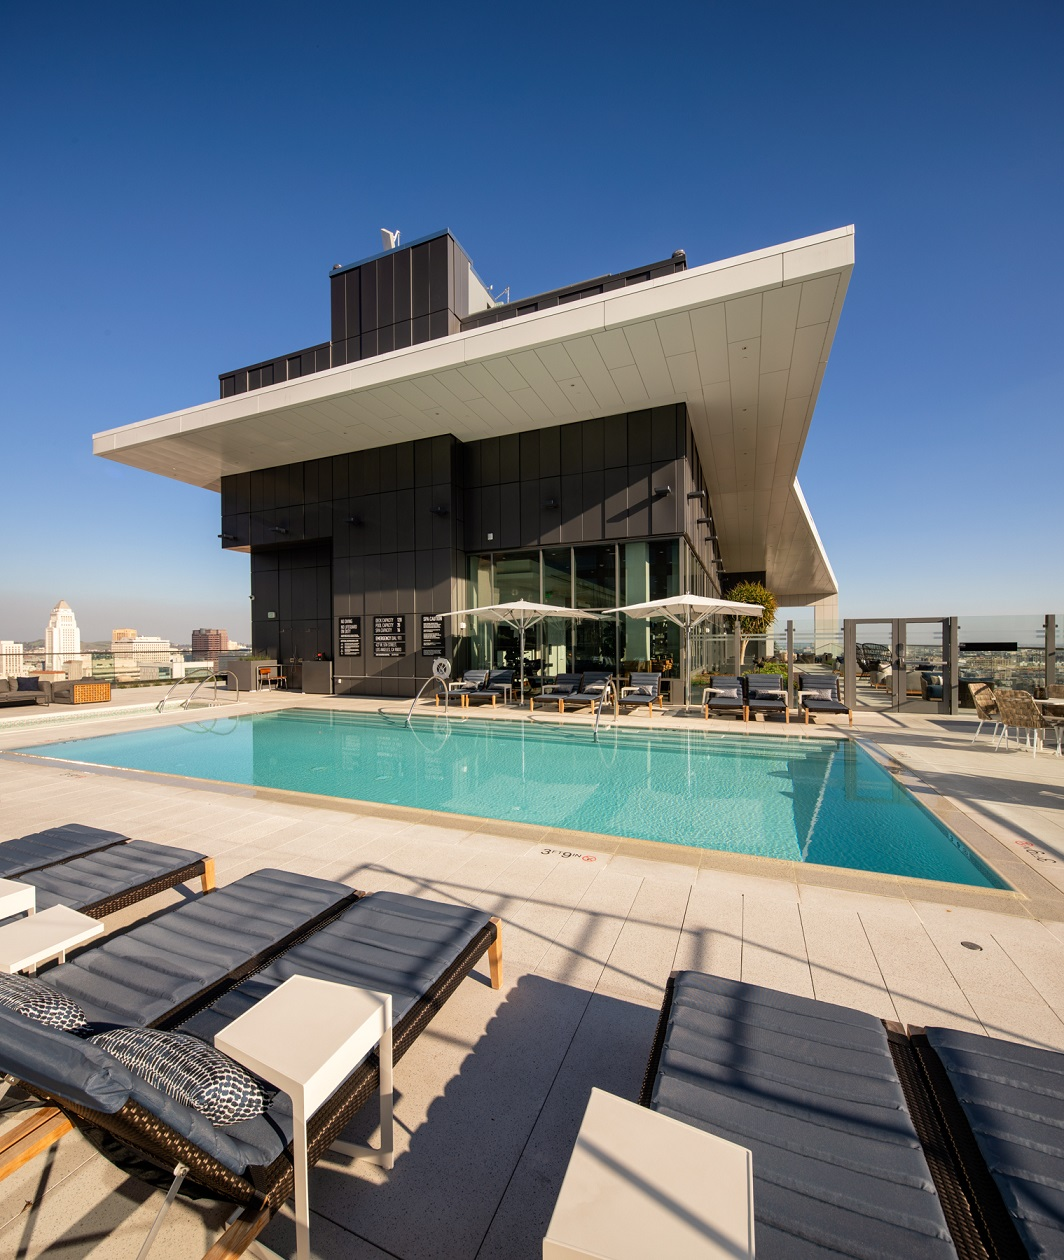 Luxury Apartments in Downtown Los Angeles for Rent - Park Fifth Tower Rooftop Pool with Lounge Chairs and Sweeping Views of DTLA